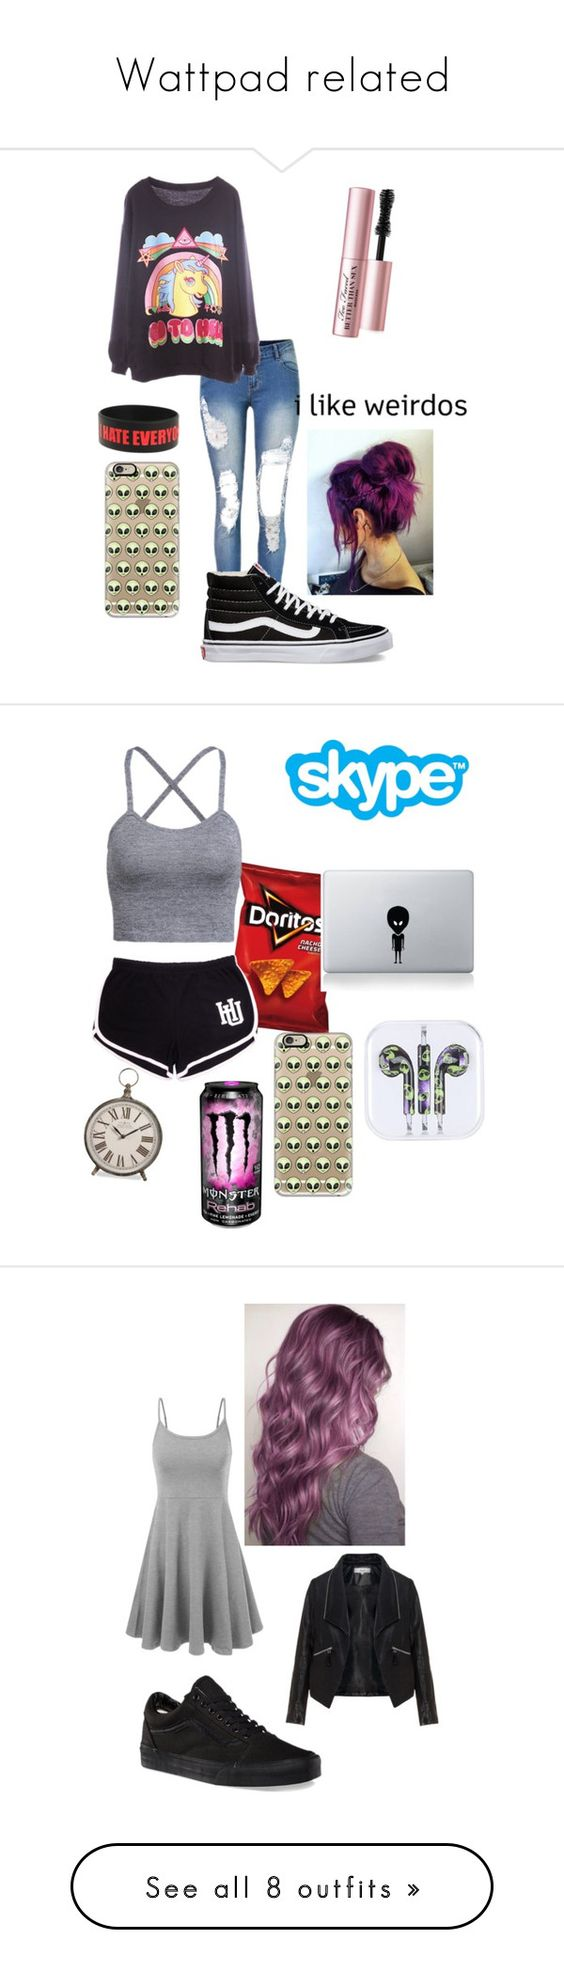 """""""Wattpad related"""" by spacemermaid13 ❤ liked on Polyvore featuring Vans, Too Faced Cosmetics, Casetify, Vinyl Revolution, Zizzi, Converse, Polo Ralph Lauren, Banana Republic, jcp and NIKE"""